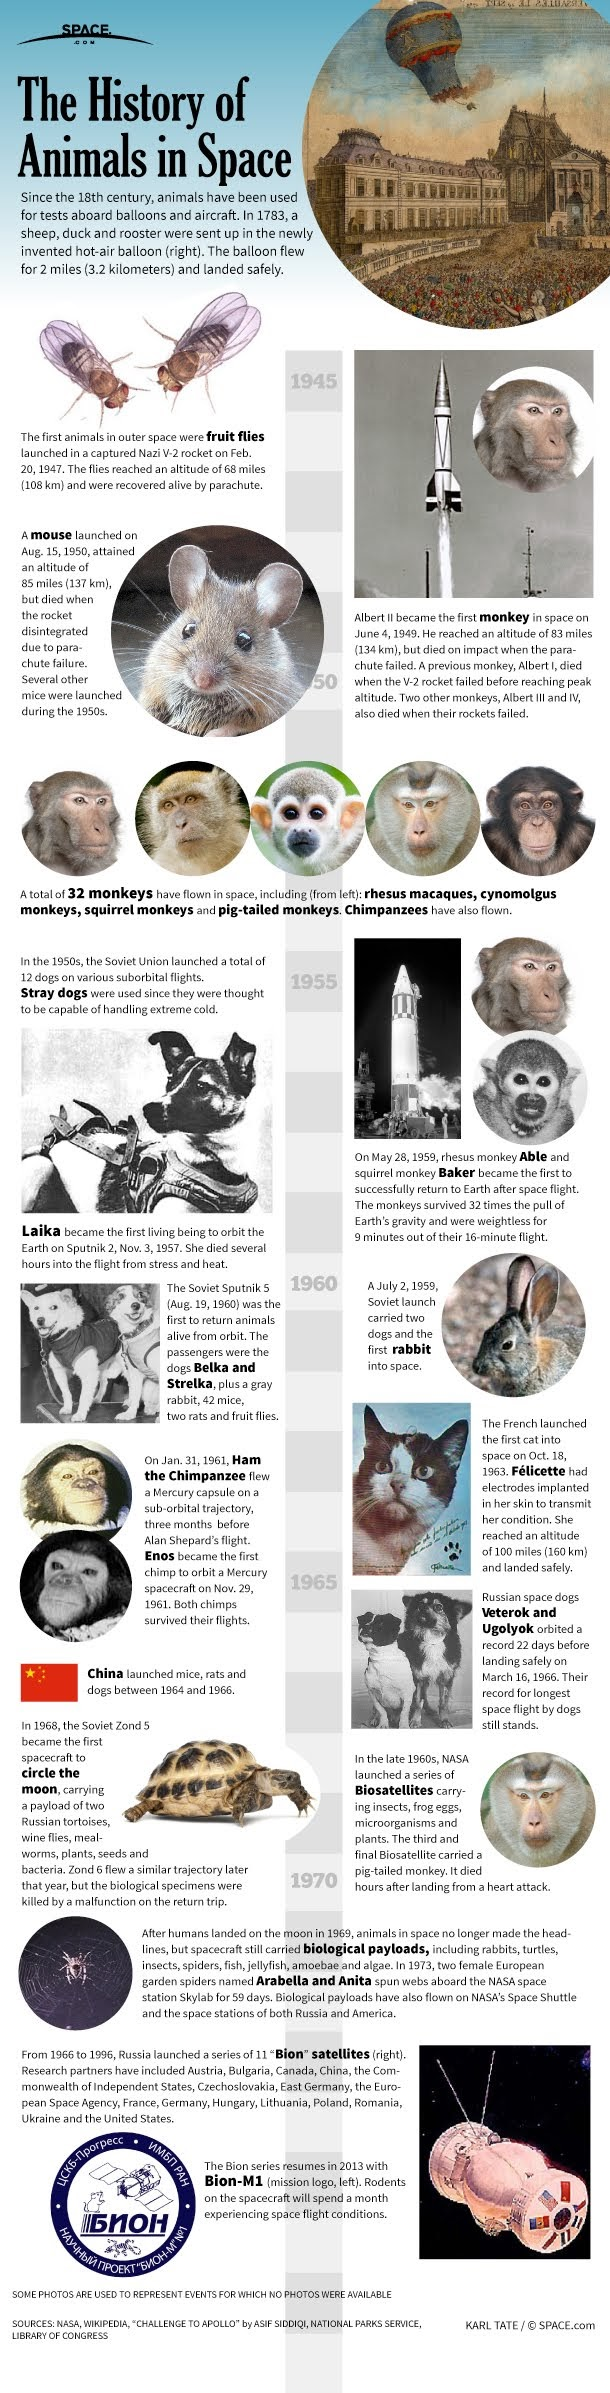 A History of Animals in Space